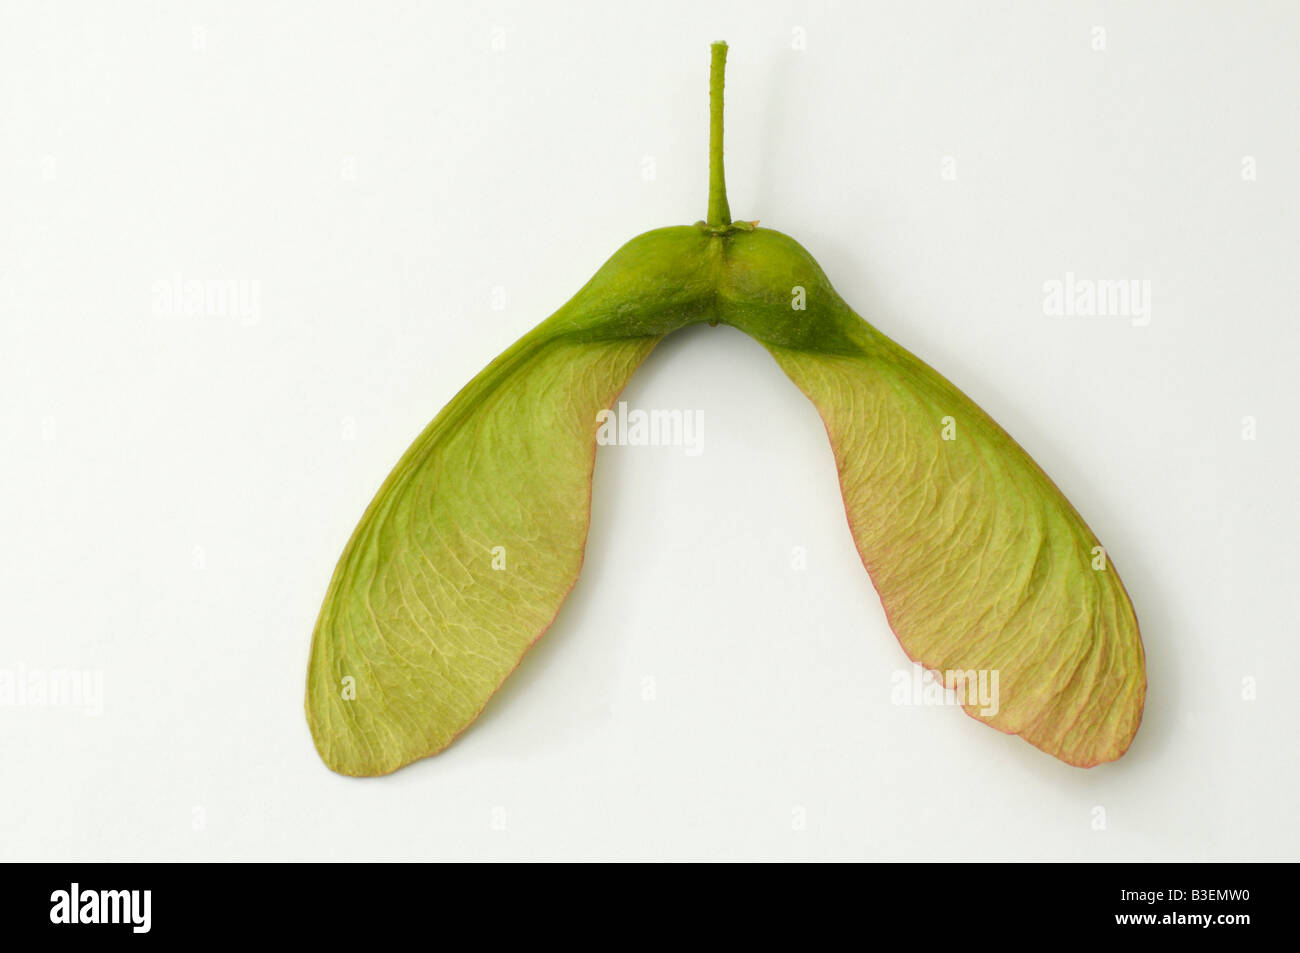 Sycamore Great Maple (Acer pseudoplatanus) winged seed Stock Photo